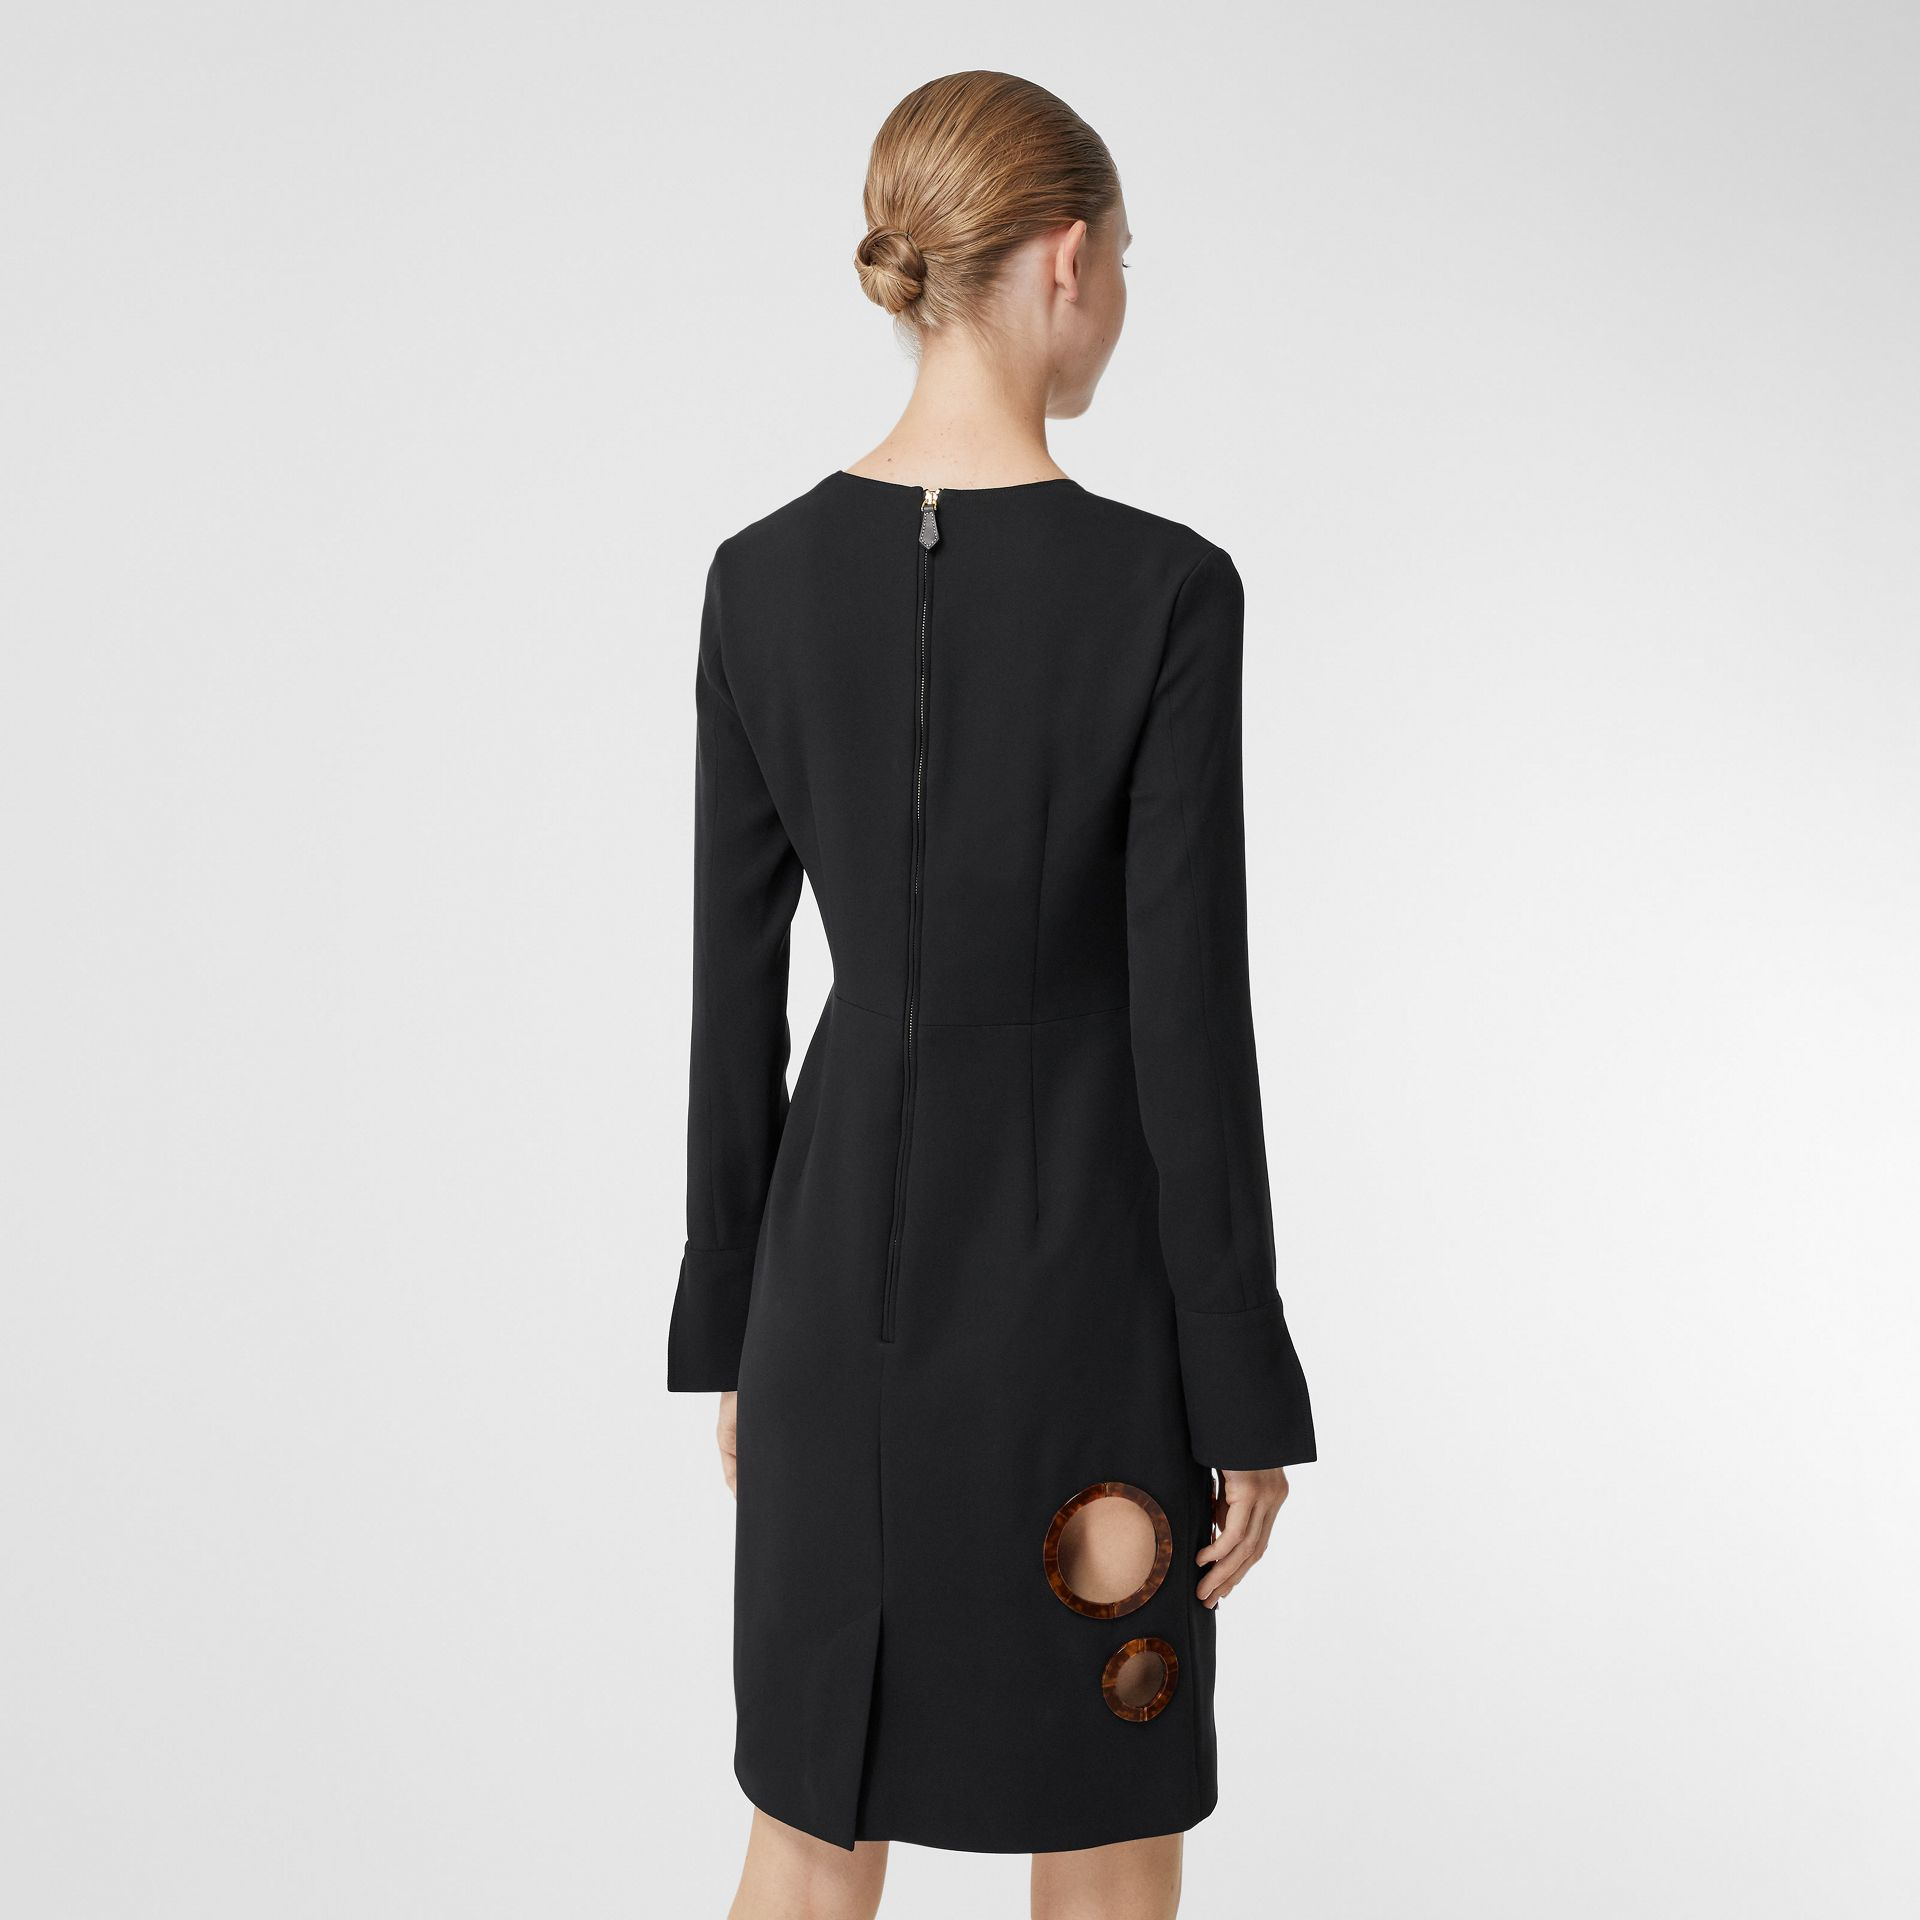 Cut-out Detail Stretch Silk Crepe Shift Dress in Black - Women | Burberry - gallery image 2